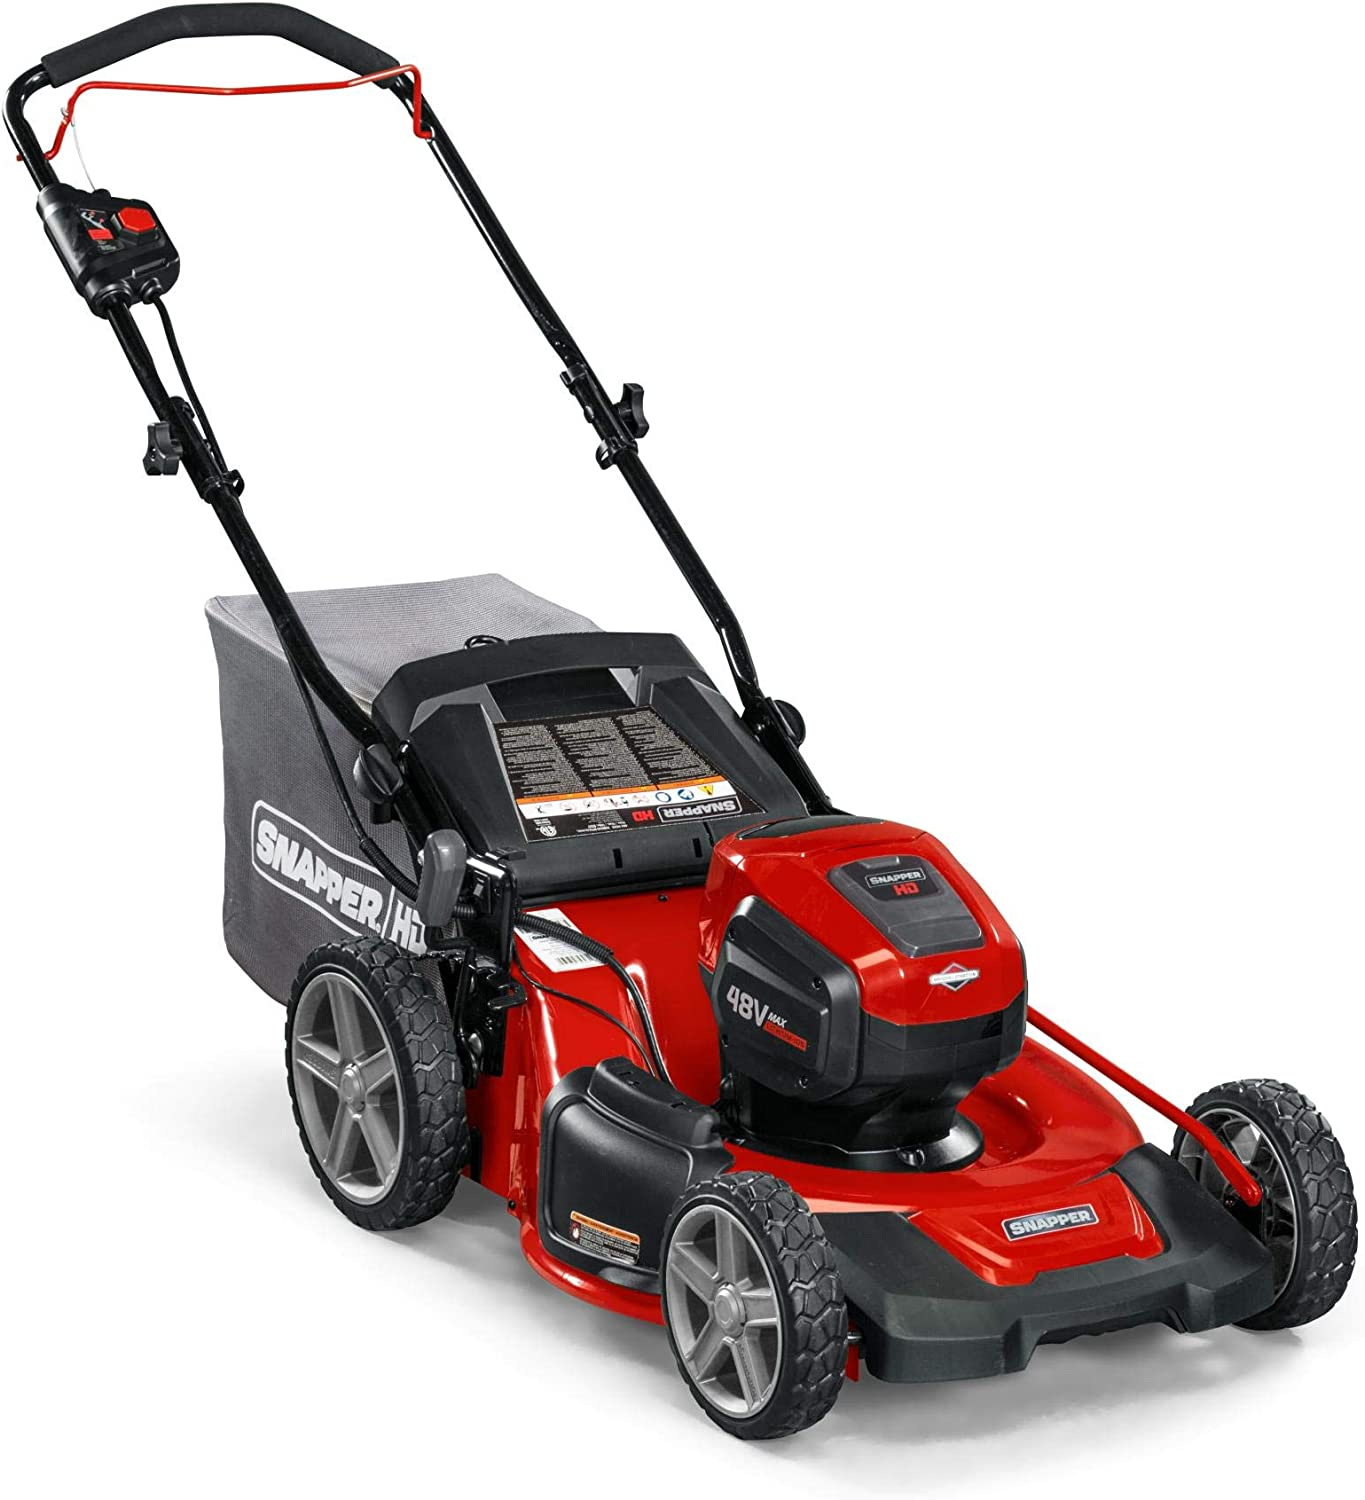 Snapper HD 48V MAX Electric Cordless Lawnmower